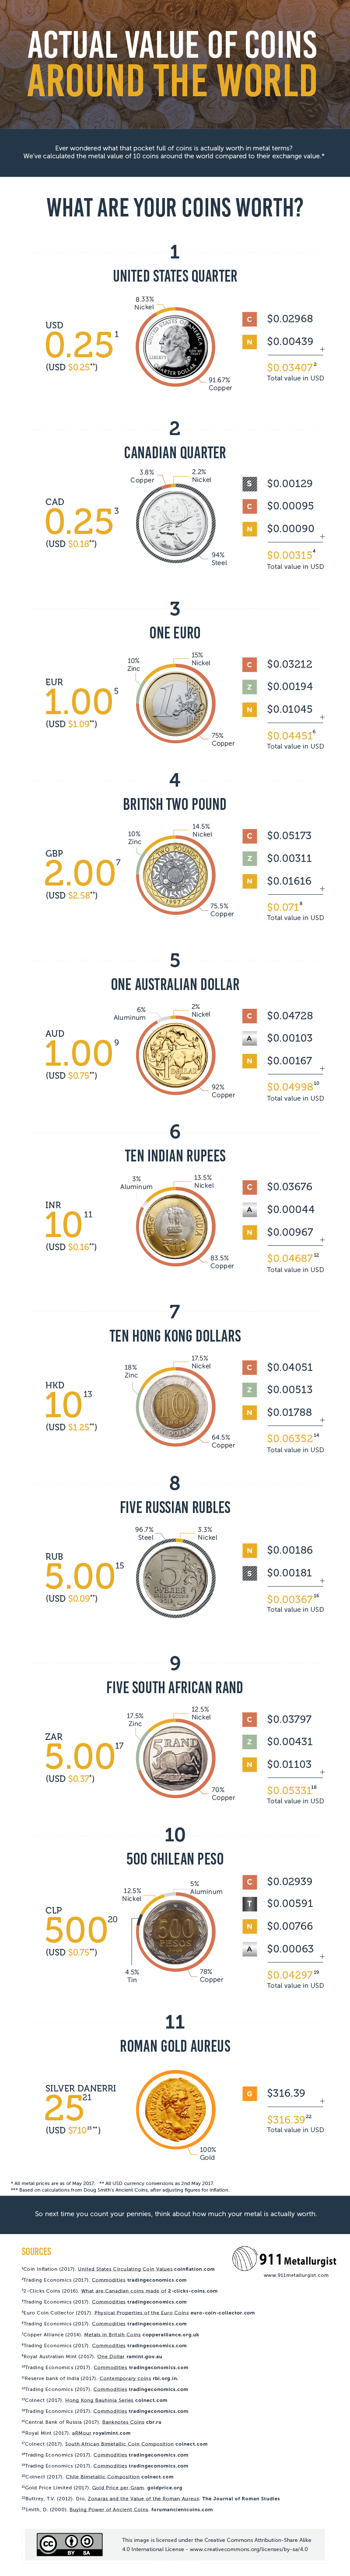 design-actual value of coins around the world